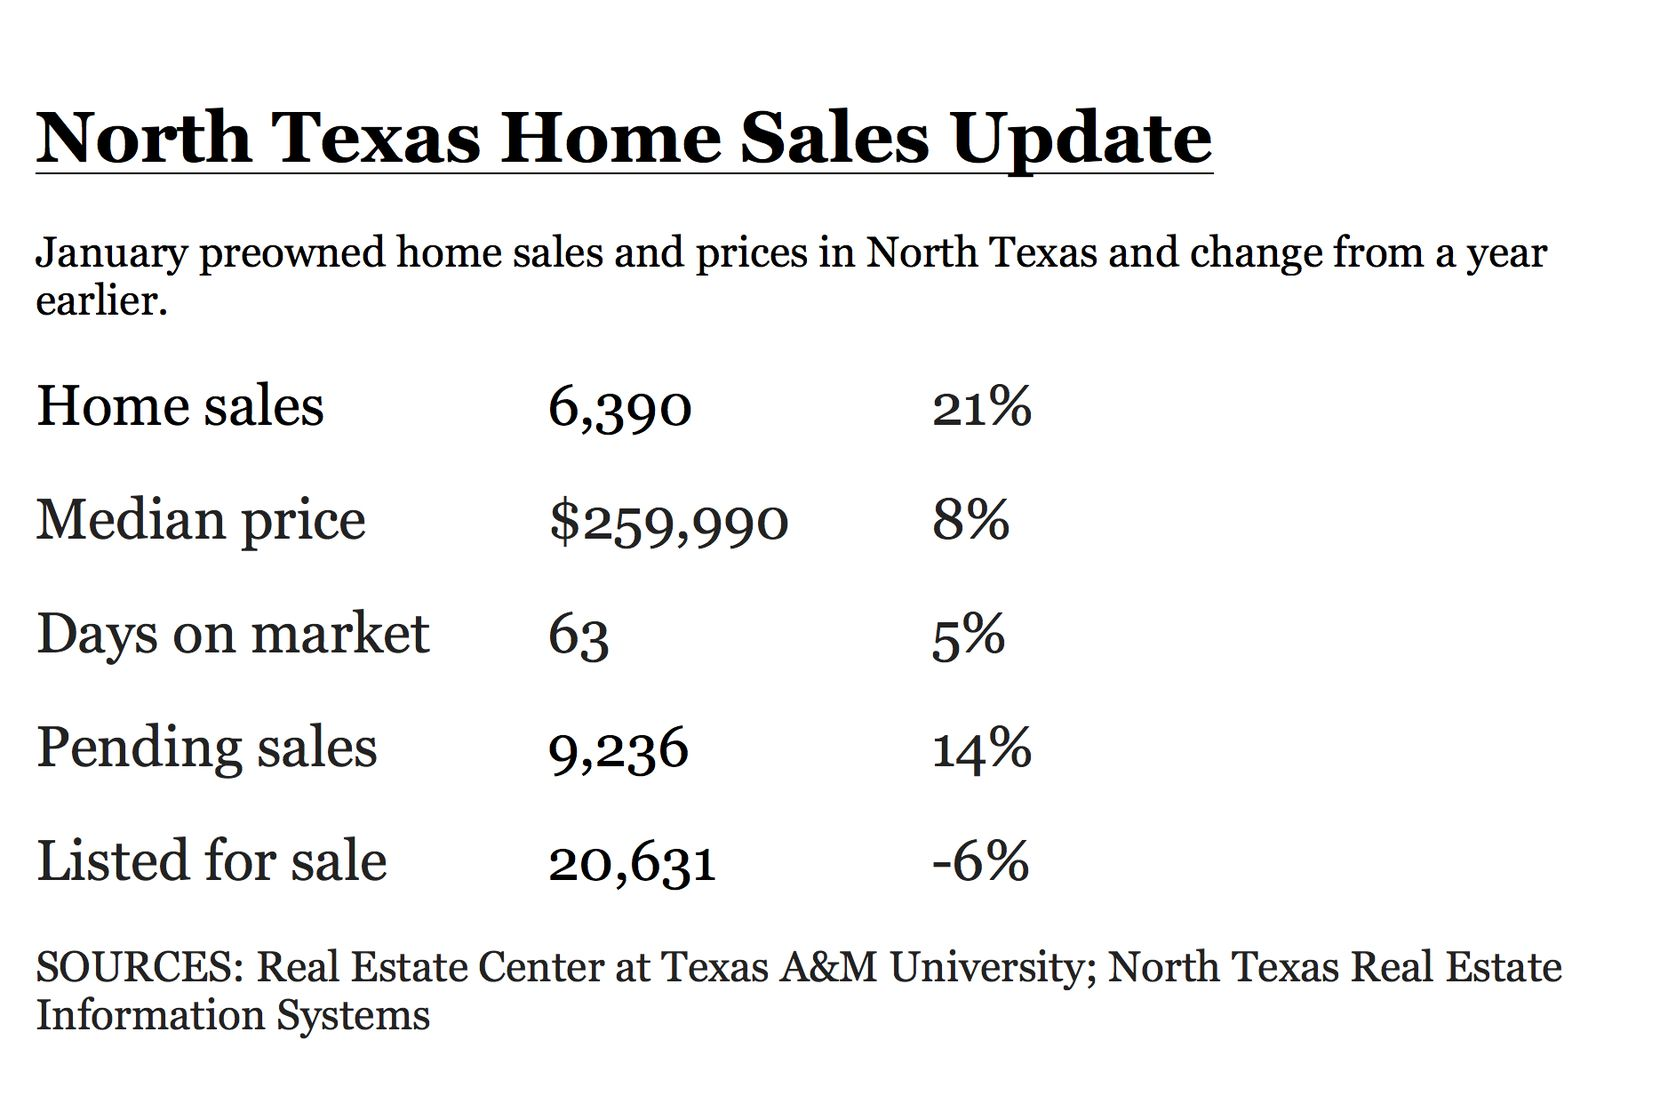 More homes were sold in the first month of 2020 than ever before in a January.